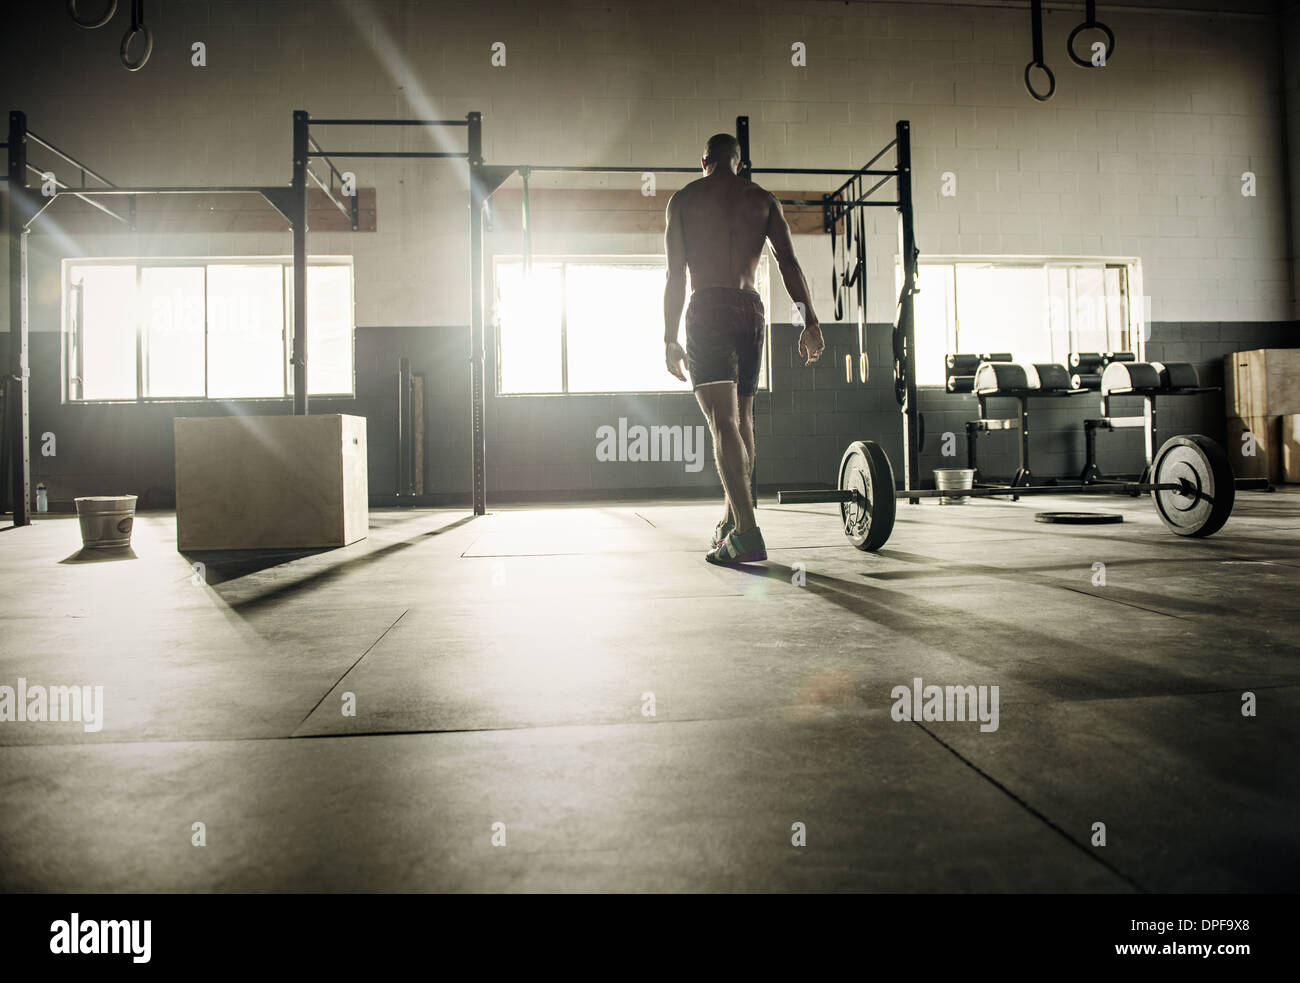 Young man preparing for exercise bar in gymnasium - Stock Image